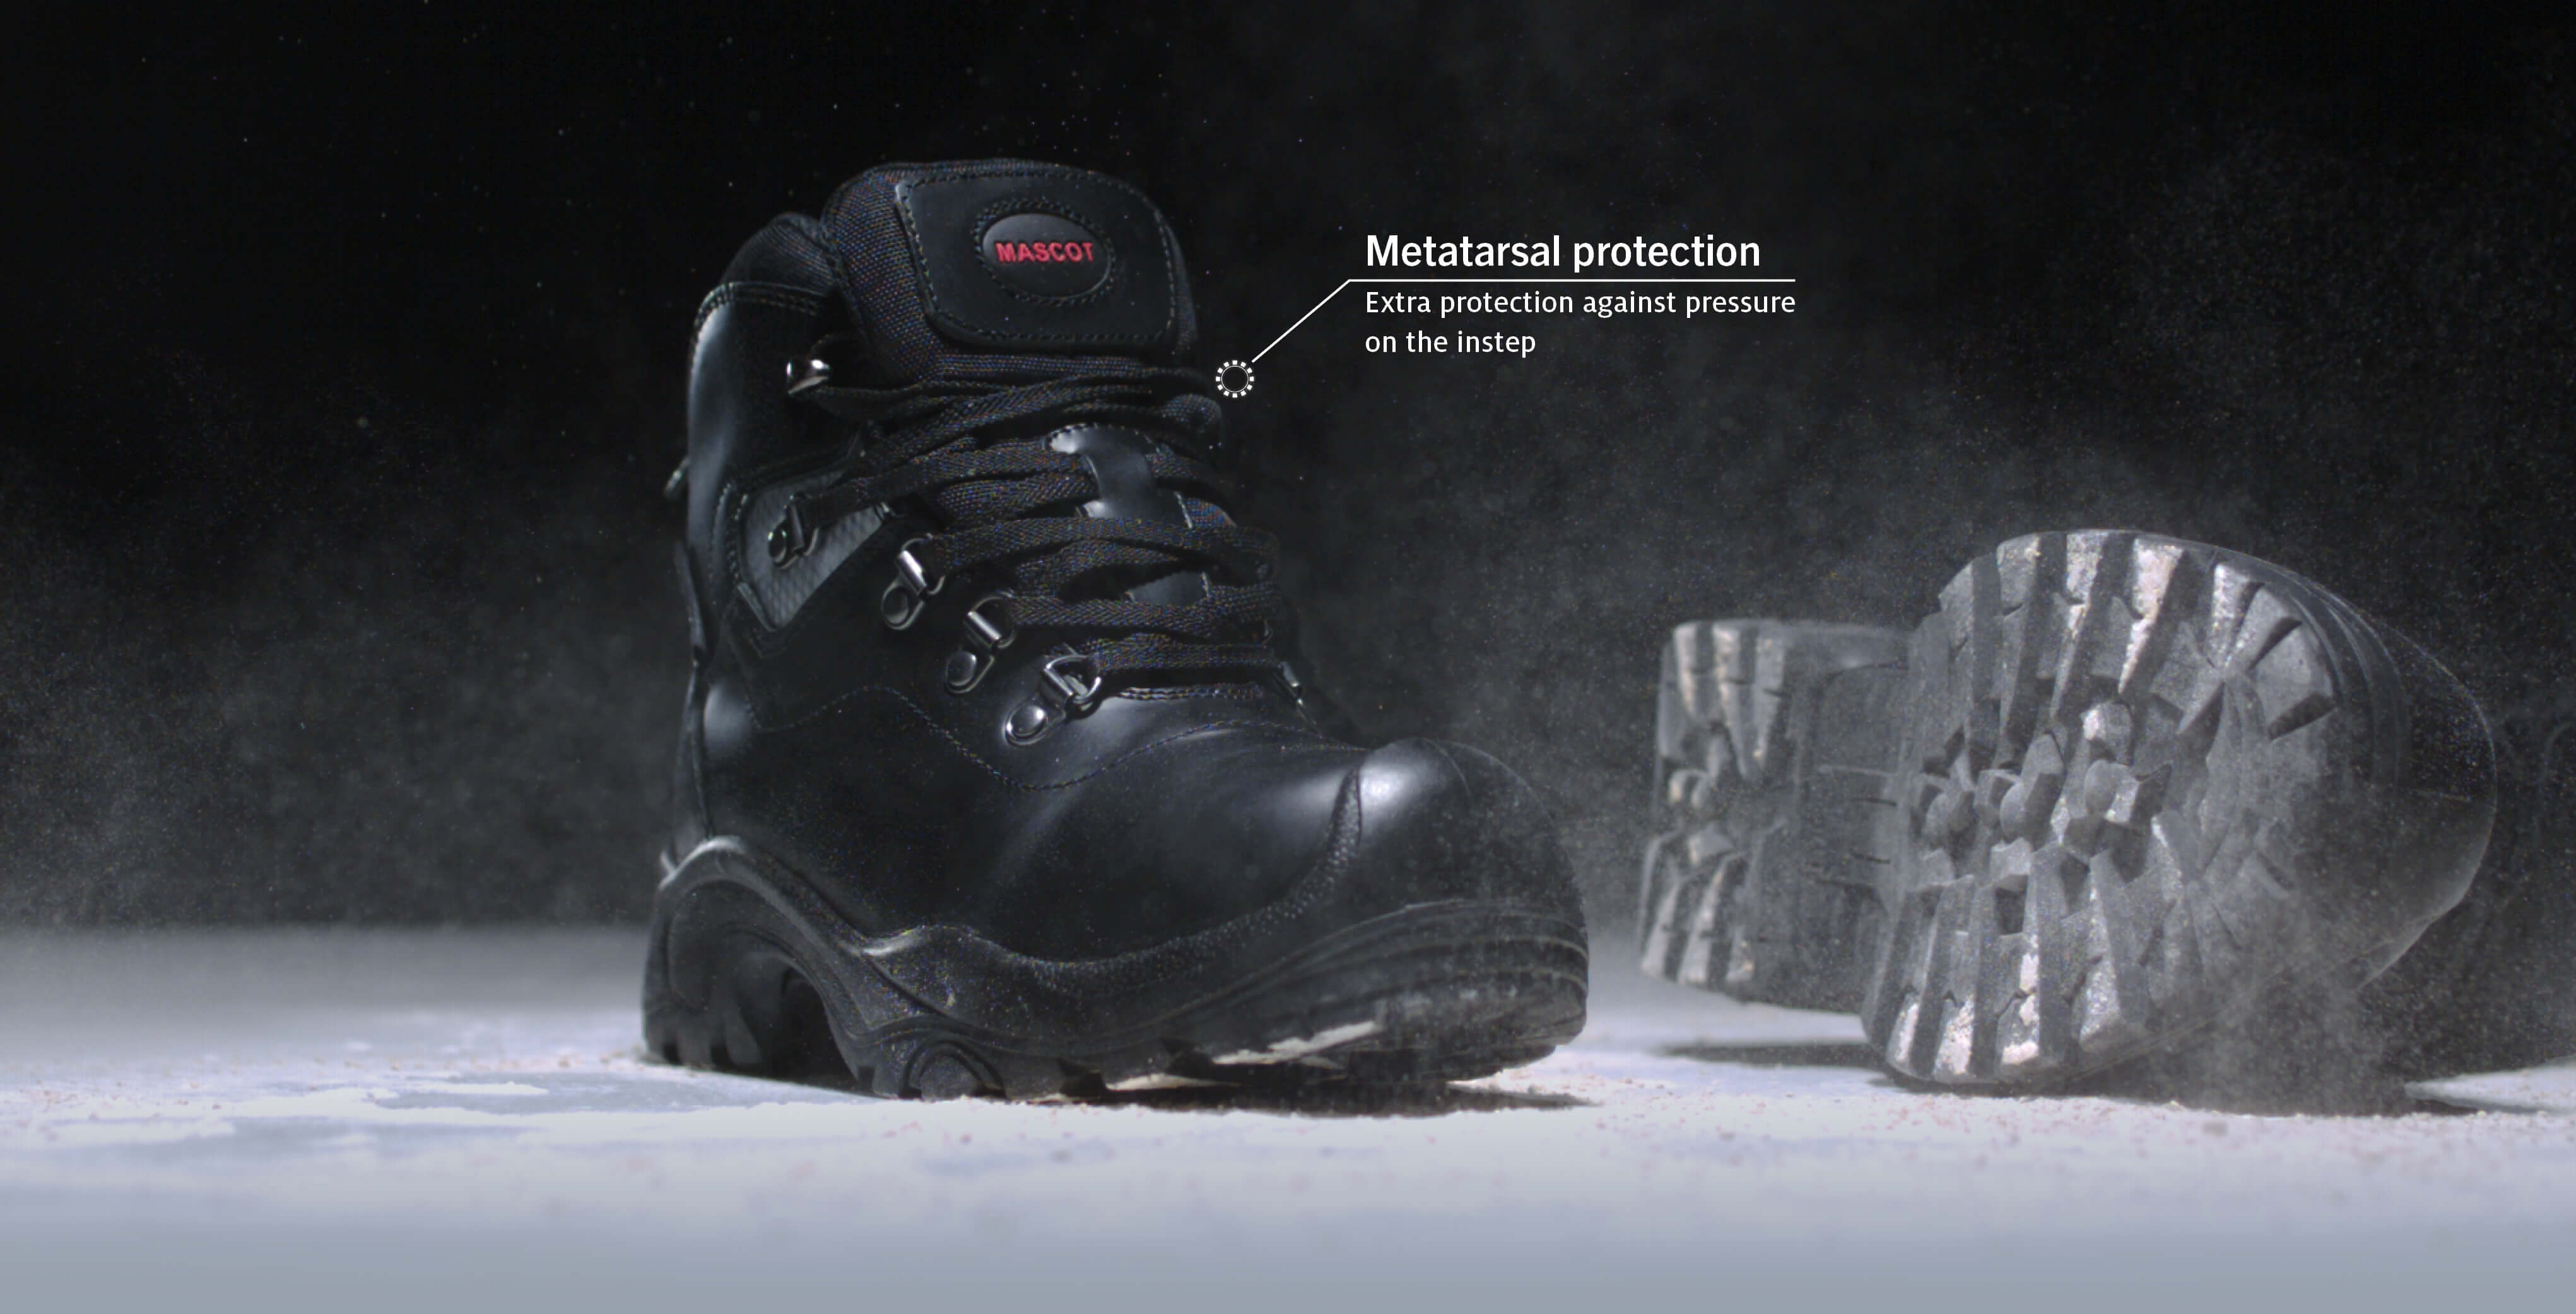 MASCOT® FOOTWEAR INDUSTRY – high durability and sturdiness Metatarsal protection. Upper with extra protection against pressure on the in-step - minimising the risk of impact and breaks. Safety Boot